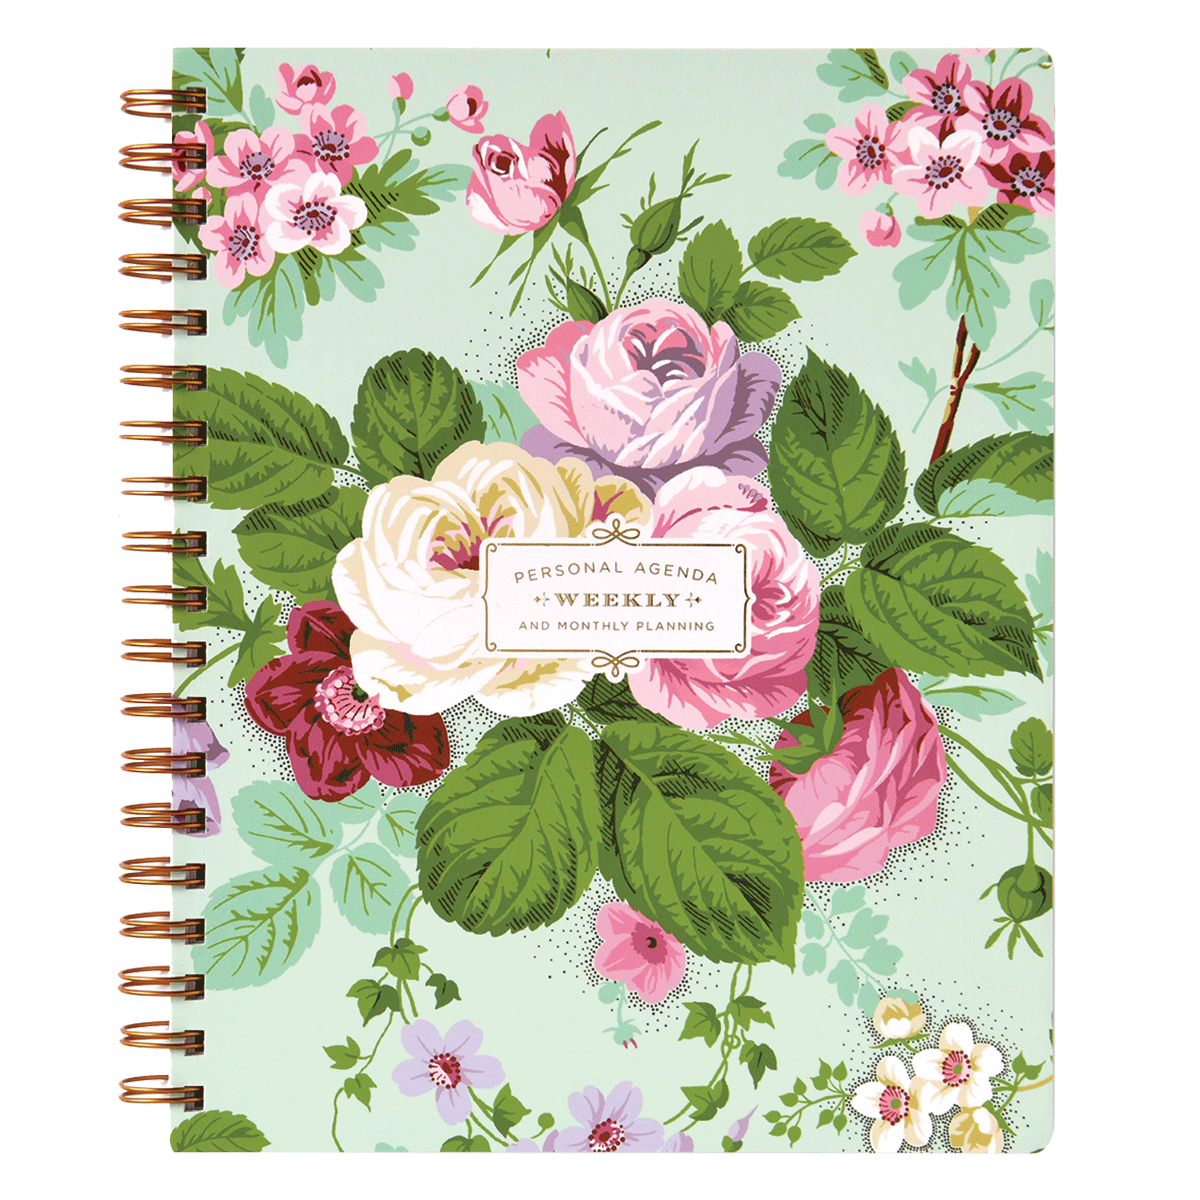 Wholesale Jewelry Rolls Amelie Floral Weekly Agenda Day Planner Anna Griffin